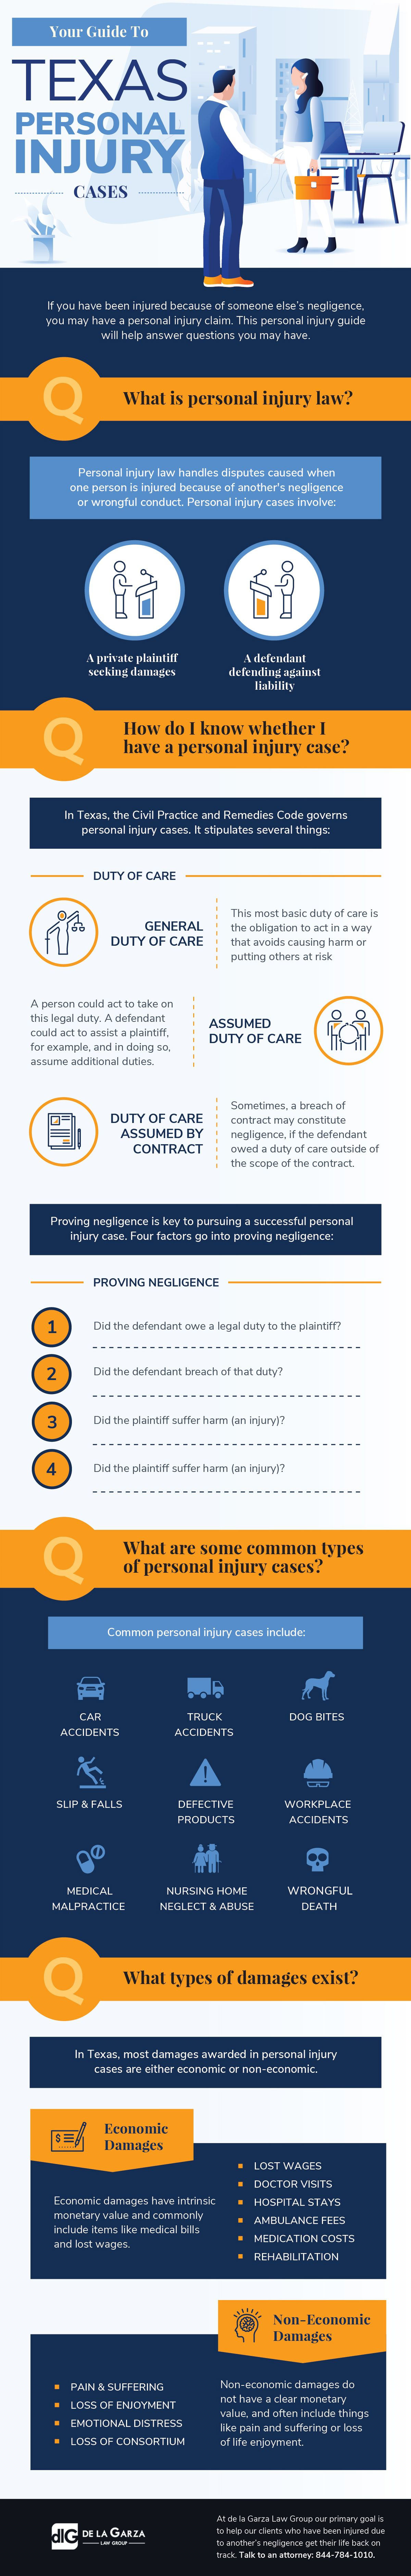 Personal Injury Infographic full